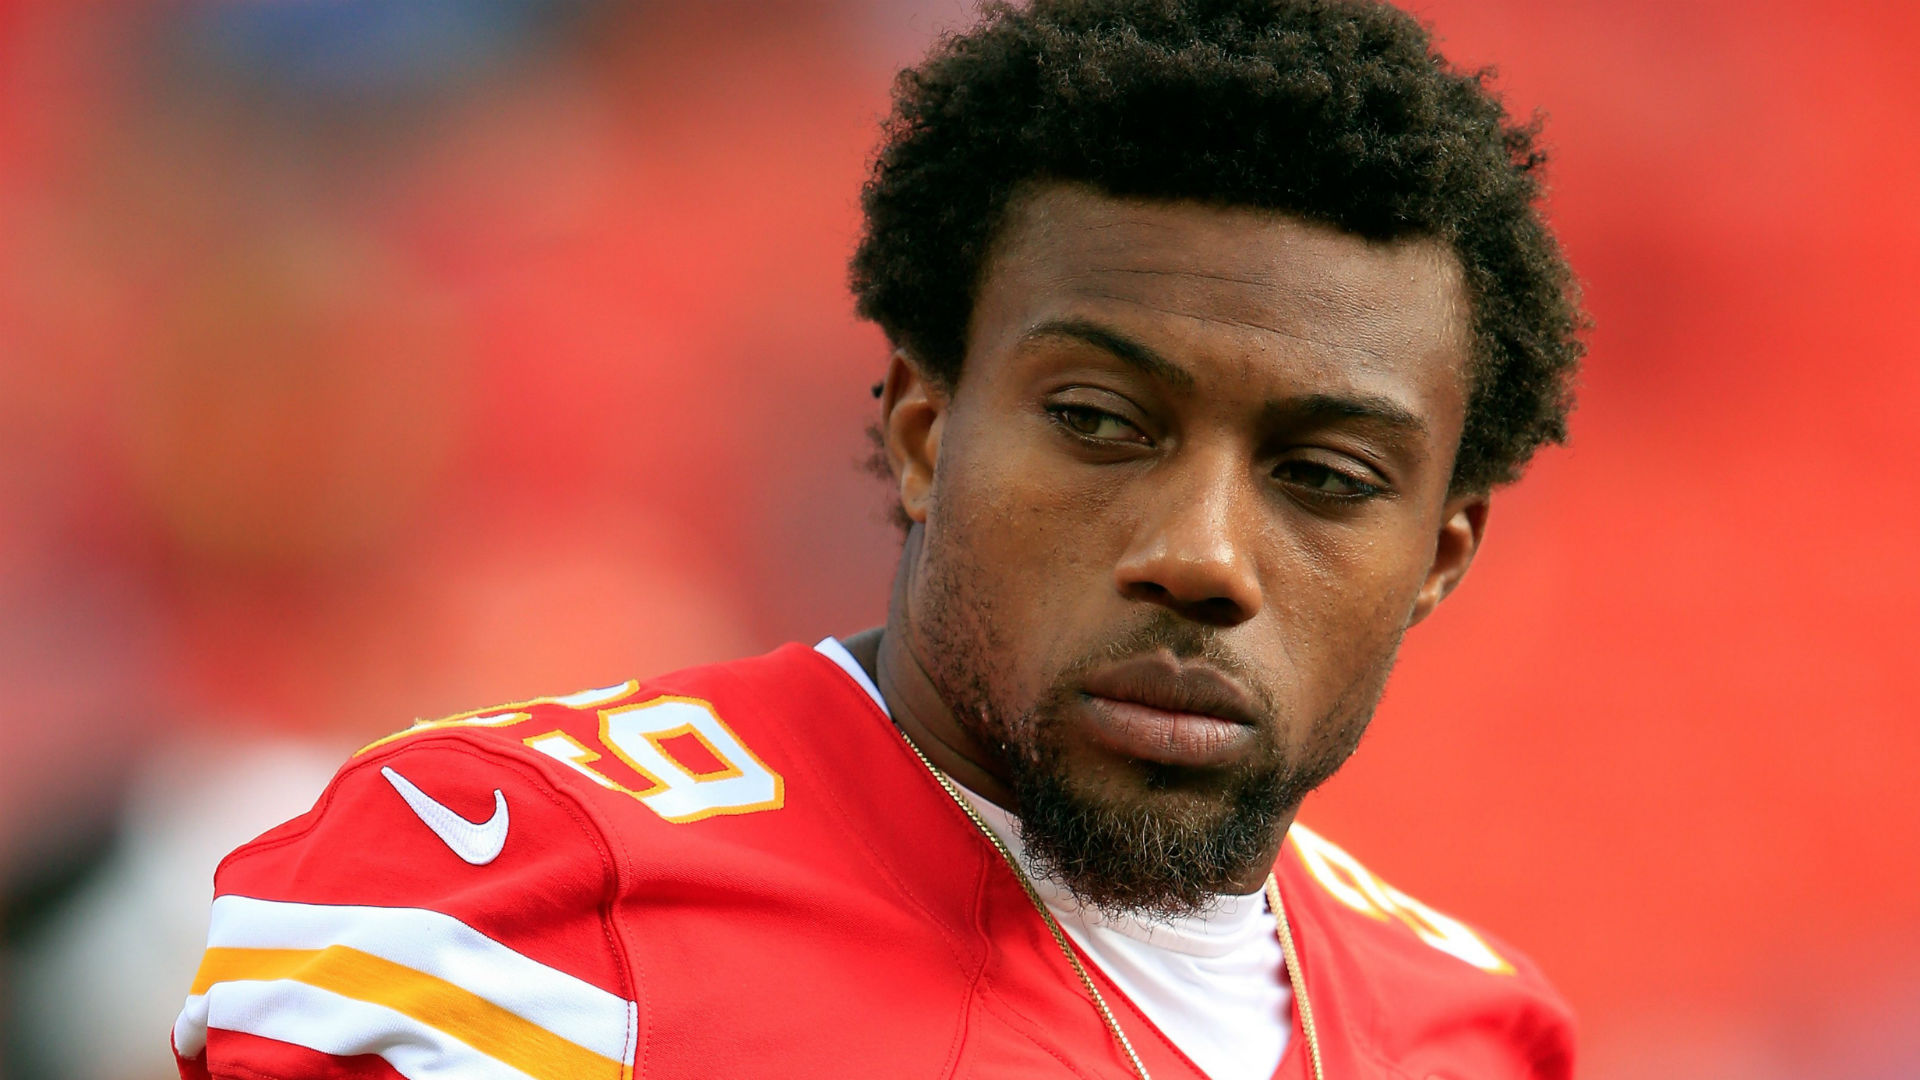 Chiefs' Eric Berry recalls cancer treatment: 'Chemo is a monster'